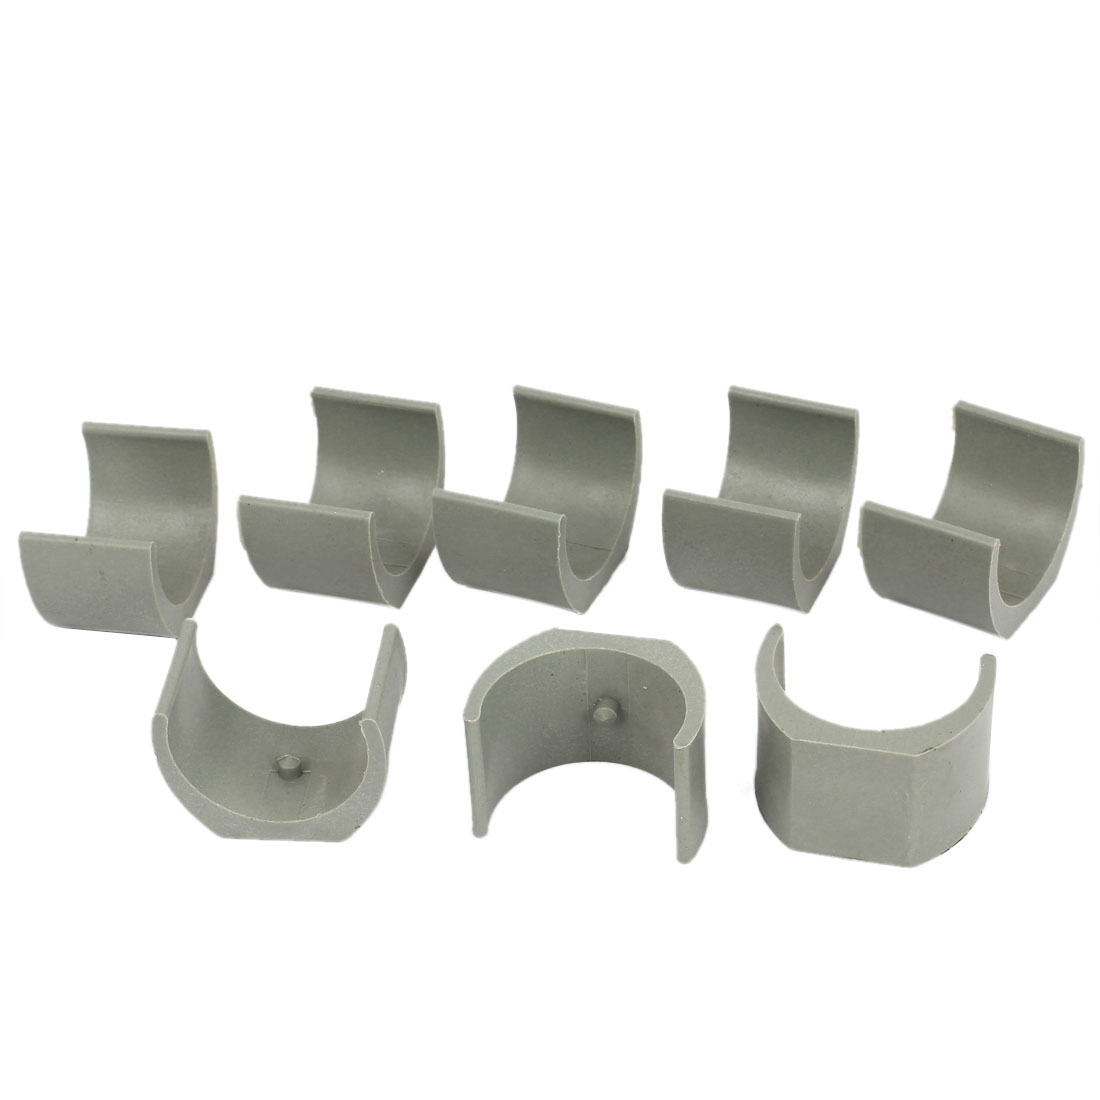 38mm Dia. Nonslip Plastic Round Pipe Clamp Foot Pads for Chair 8Pcs Gray